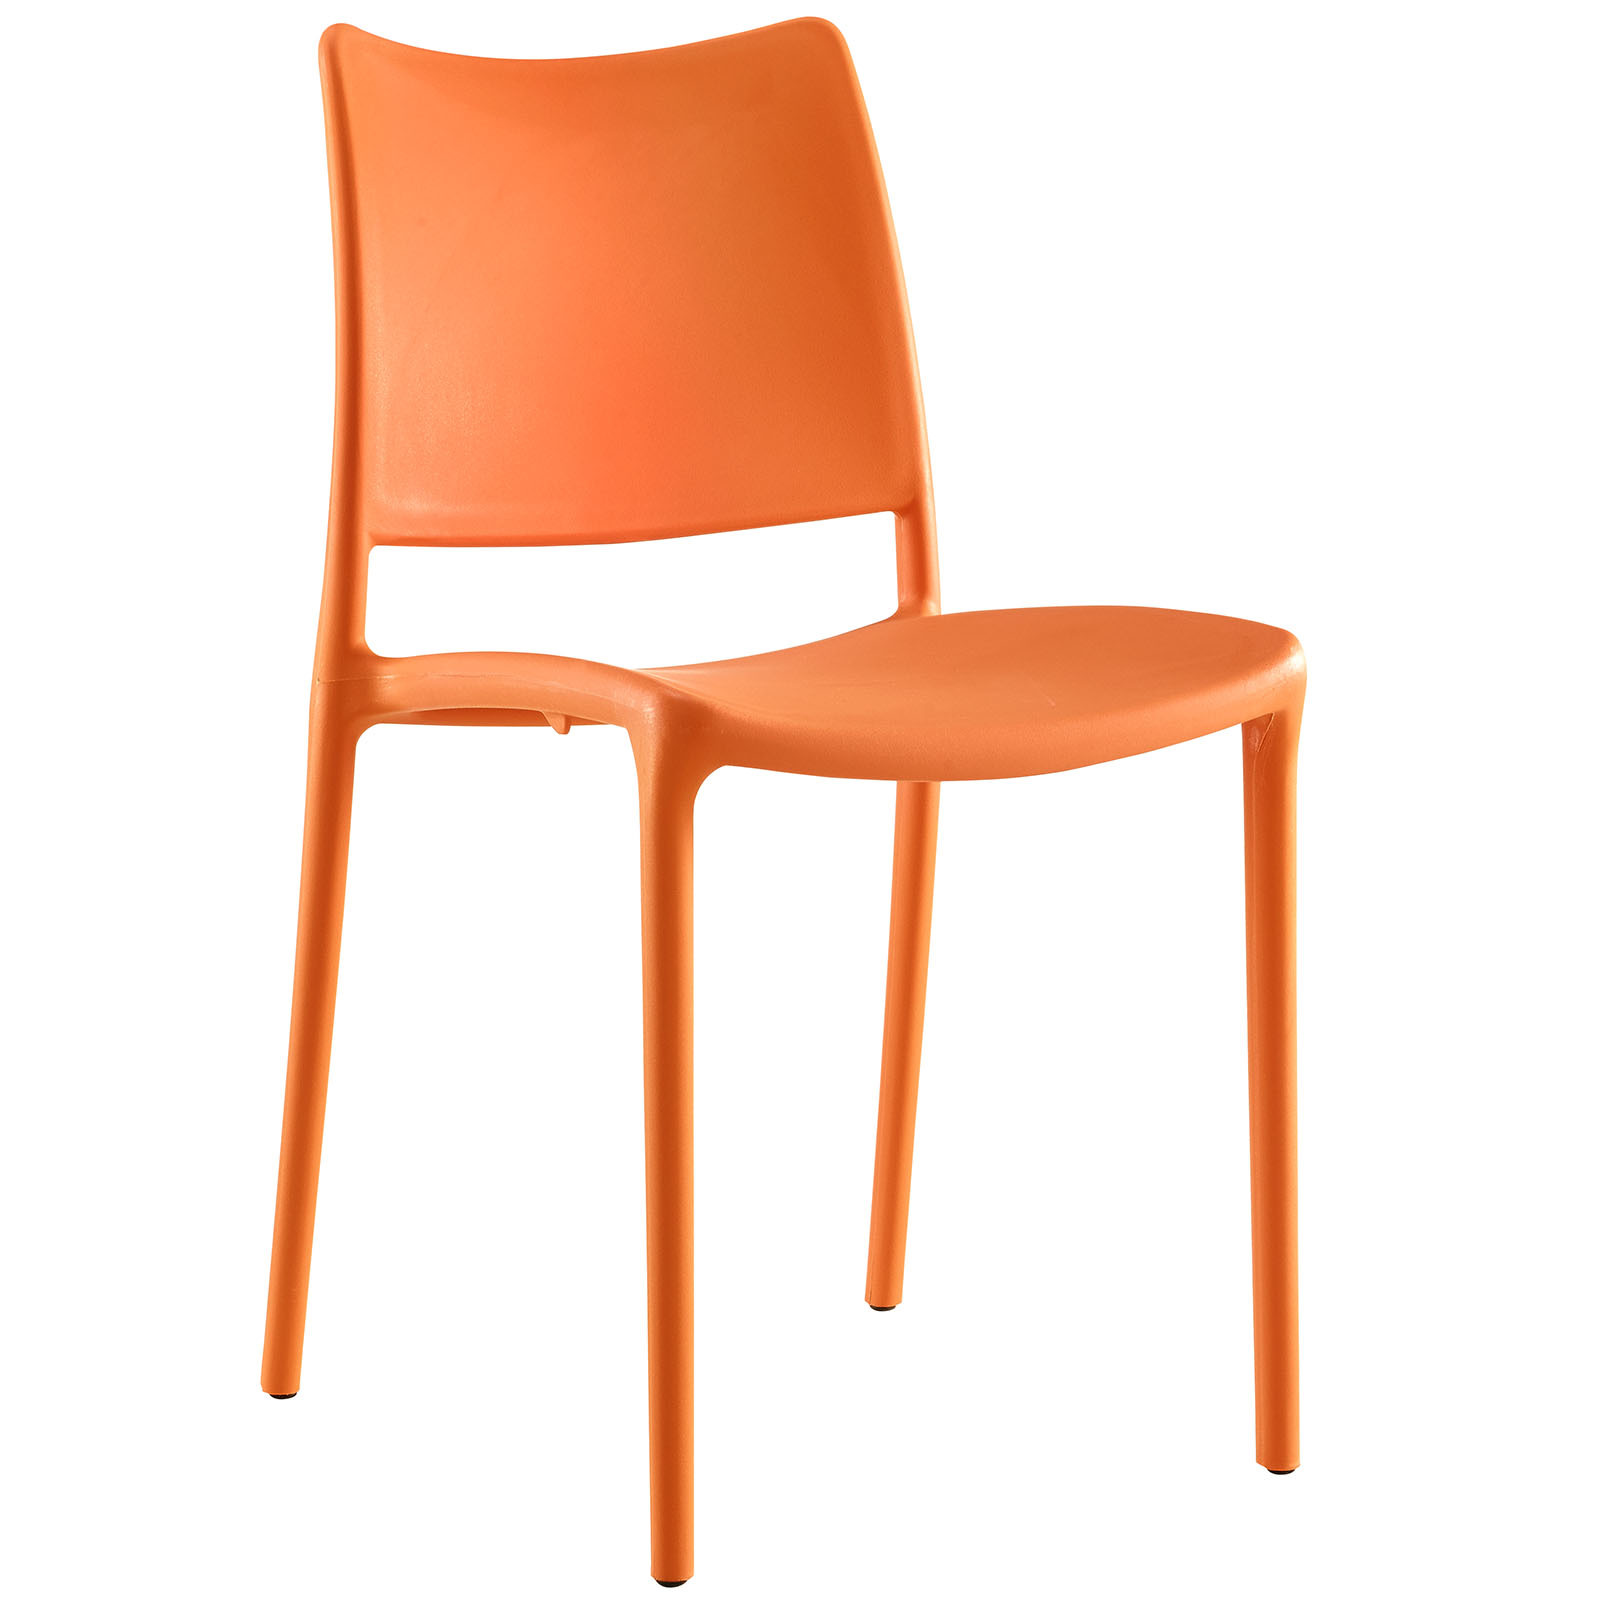 Orange Dining Chairs: Hipster Dining Side Chair In Orange